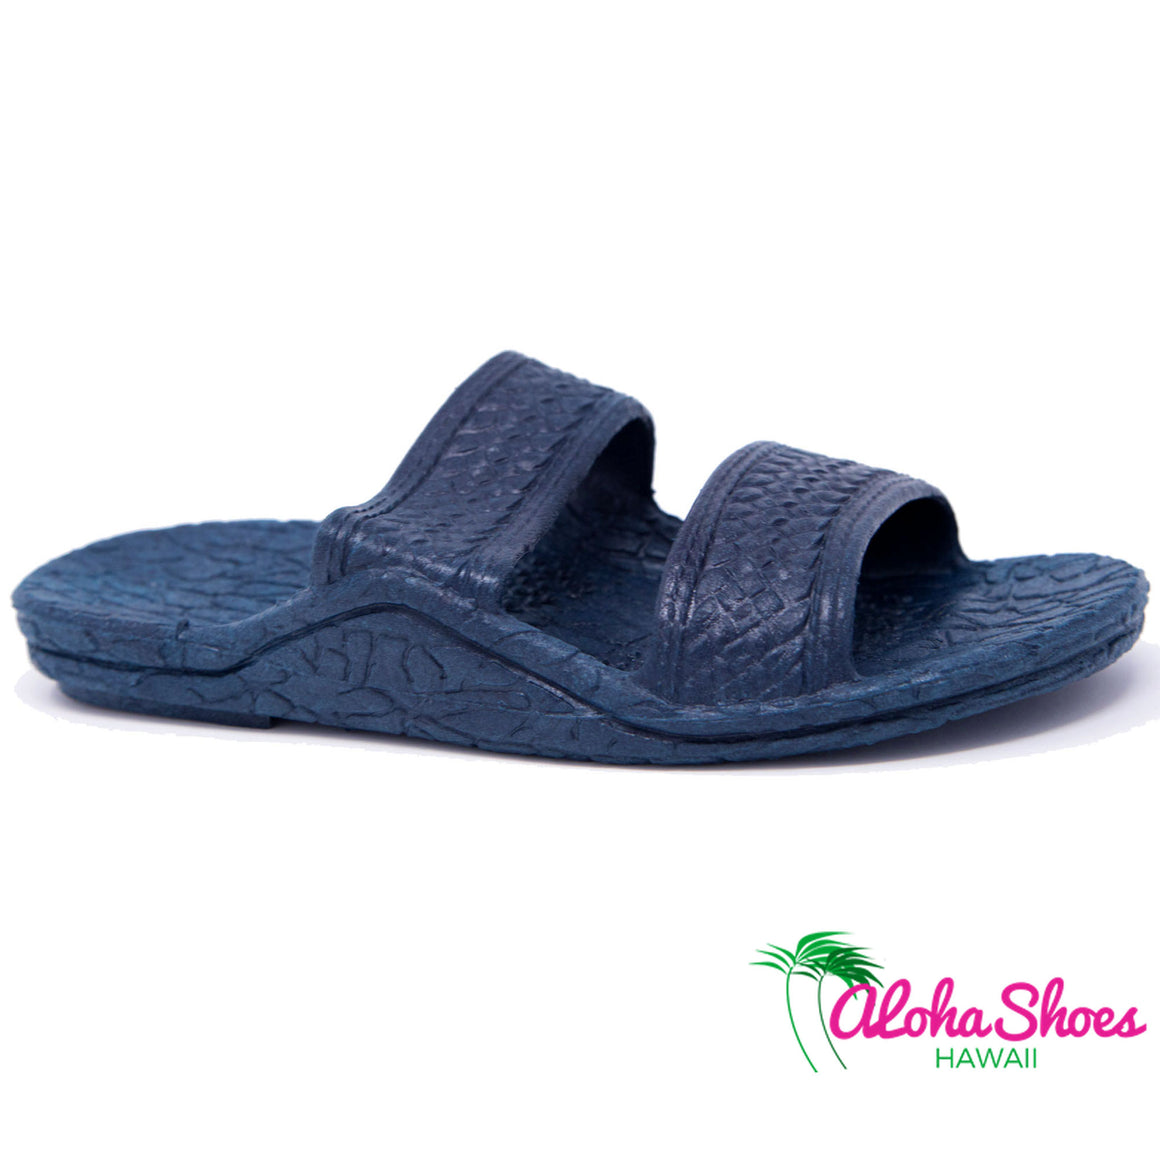 Pali Hawaii Kids Jandals at AlohaShoes.com